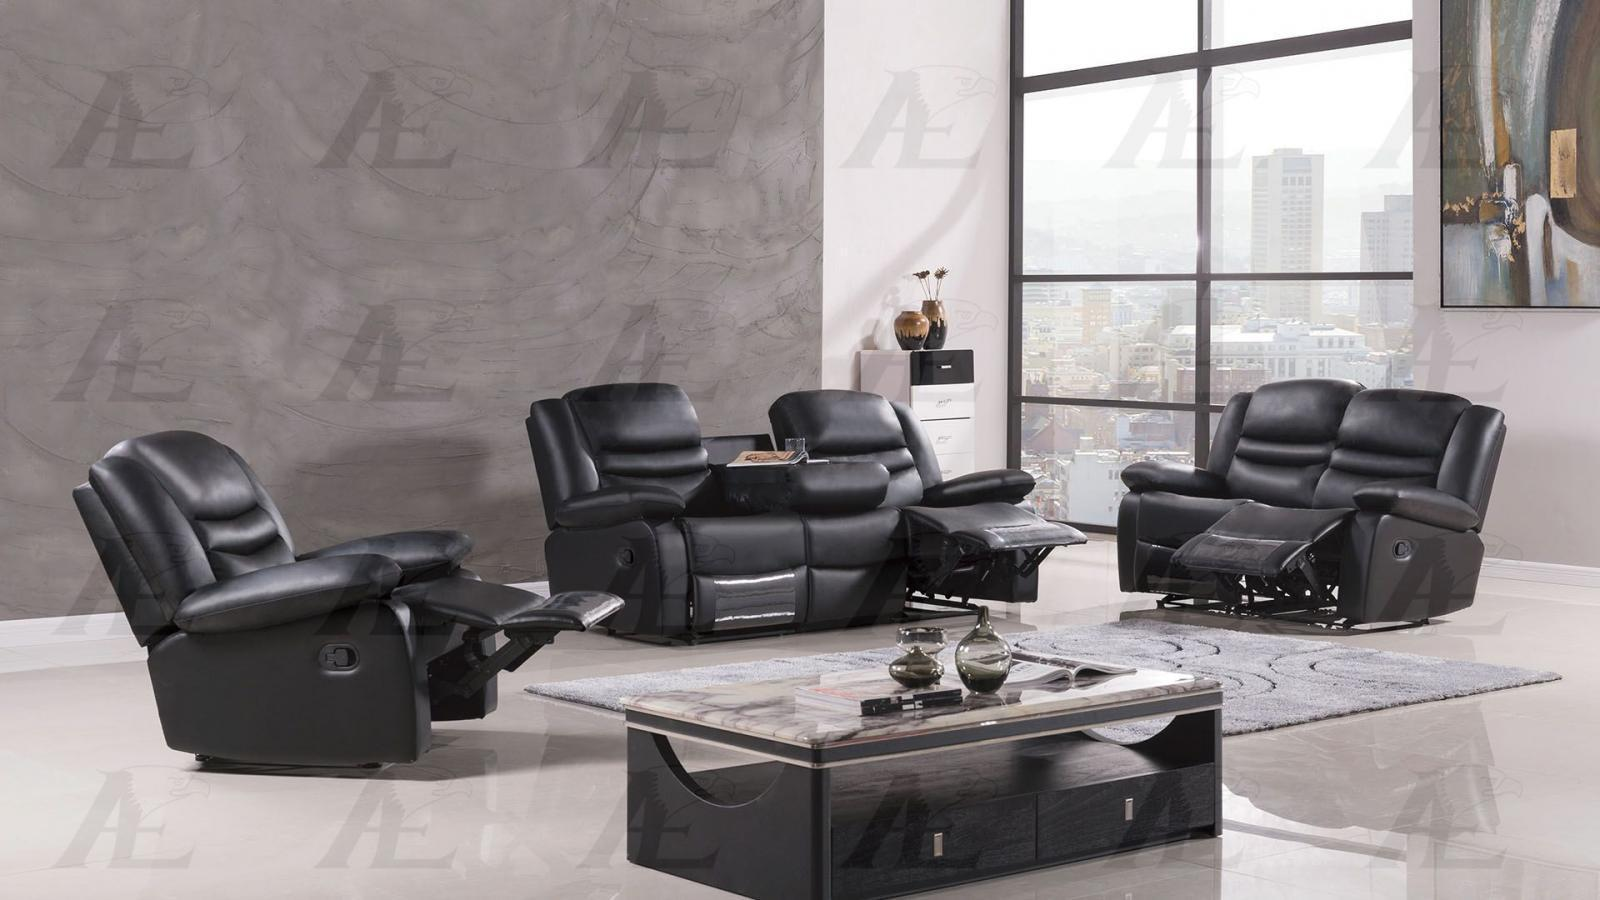 American Eagle AE-D823-BK Black Recliner Sofa Loveseat and Chair Set 3Pcs